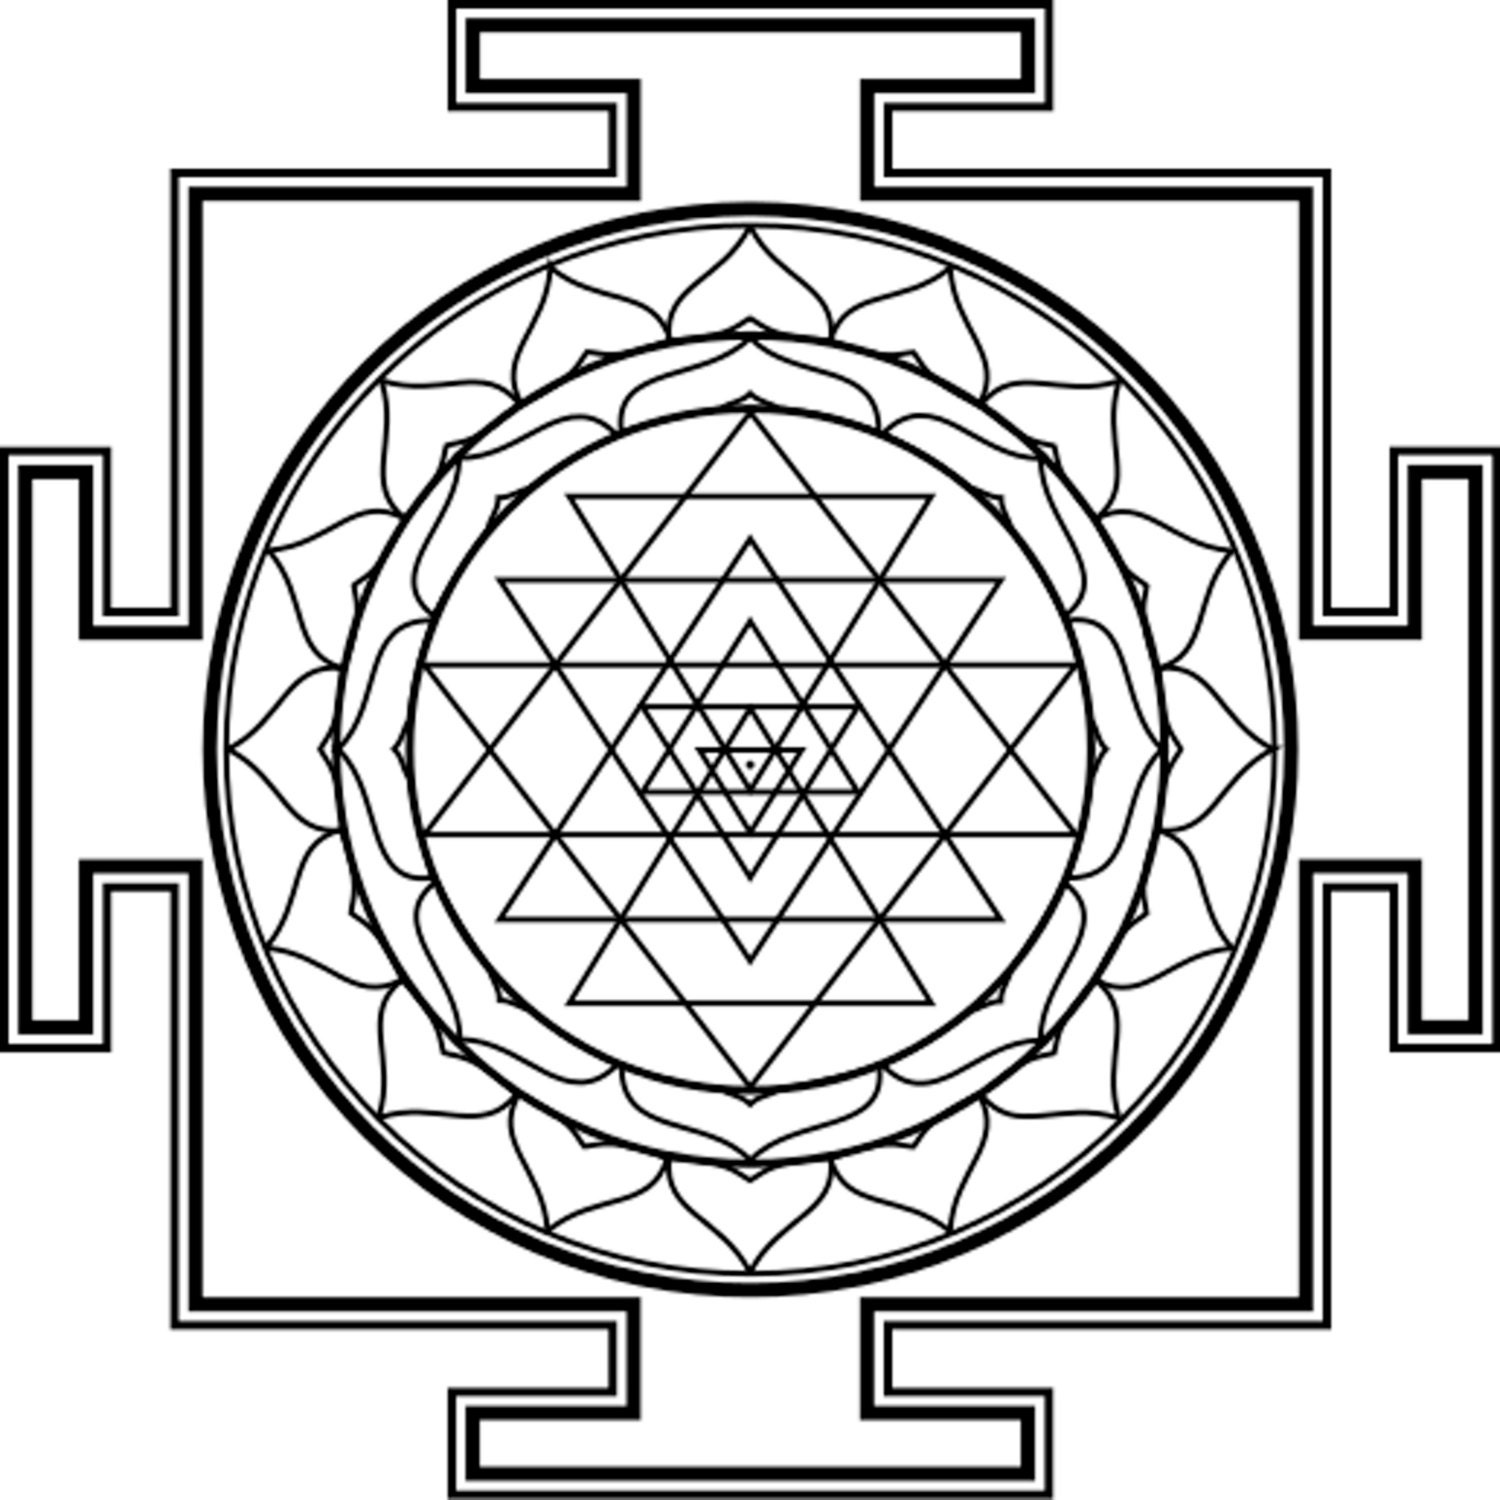 Yantras 11 Coloring Pages pdfs for Meditative Creativity